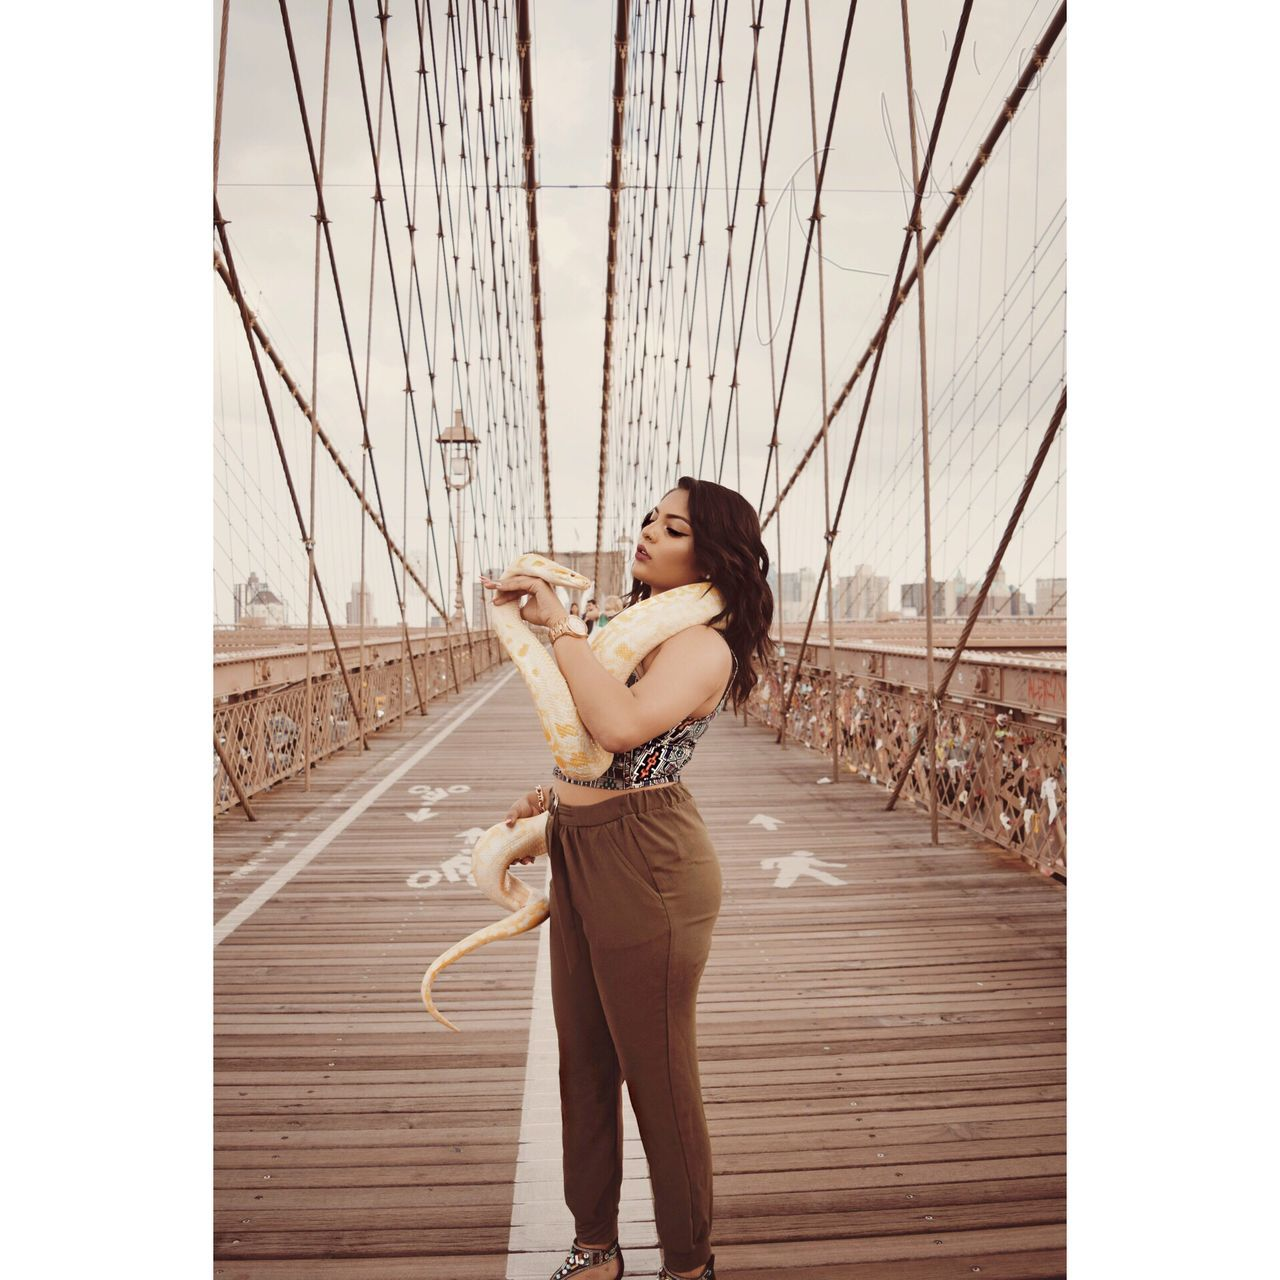 Bridge - Man Made Structure Photography Themes Photographing Young Women Young Adult Architecture Brooklyn Bridge  Outdoors City Beauty Portrait Front View